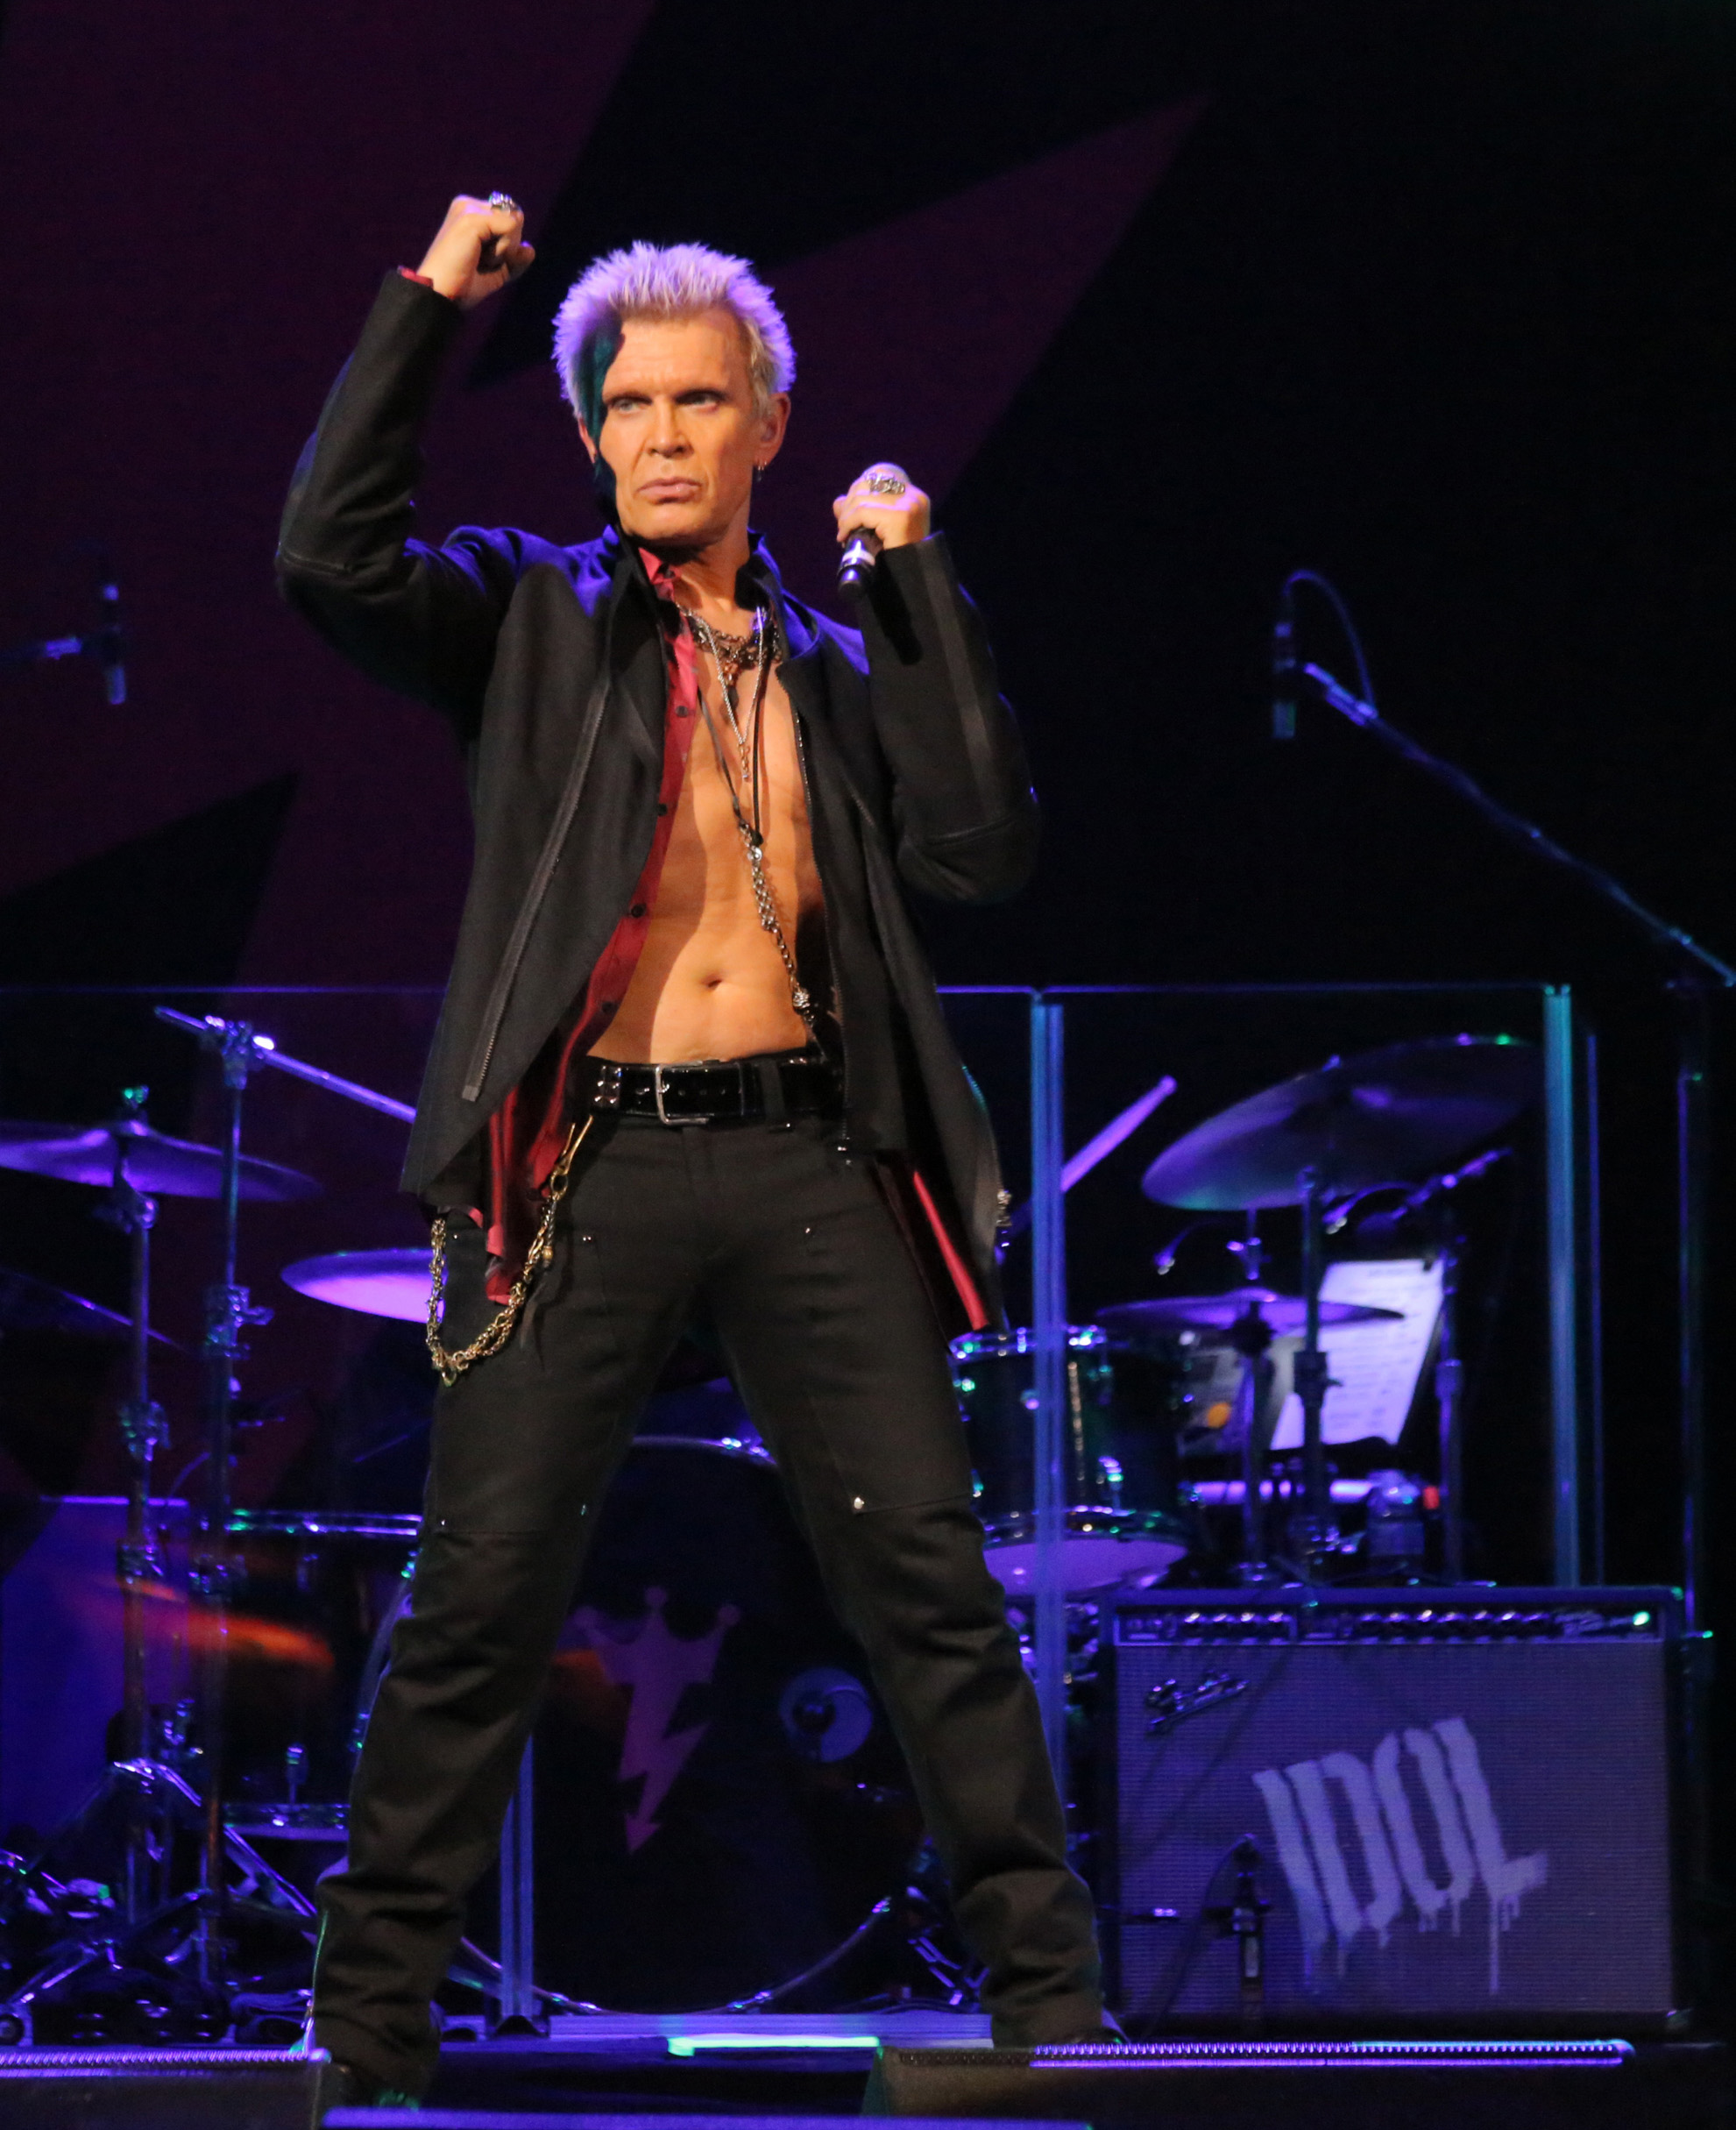 billy_idol_live_edison_graff.jpg